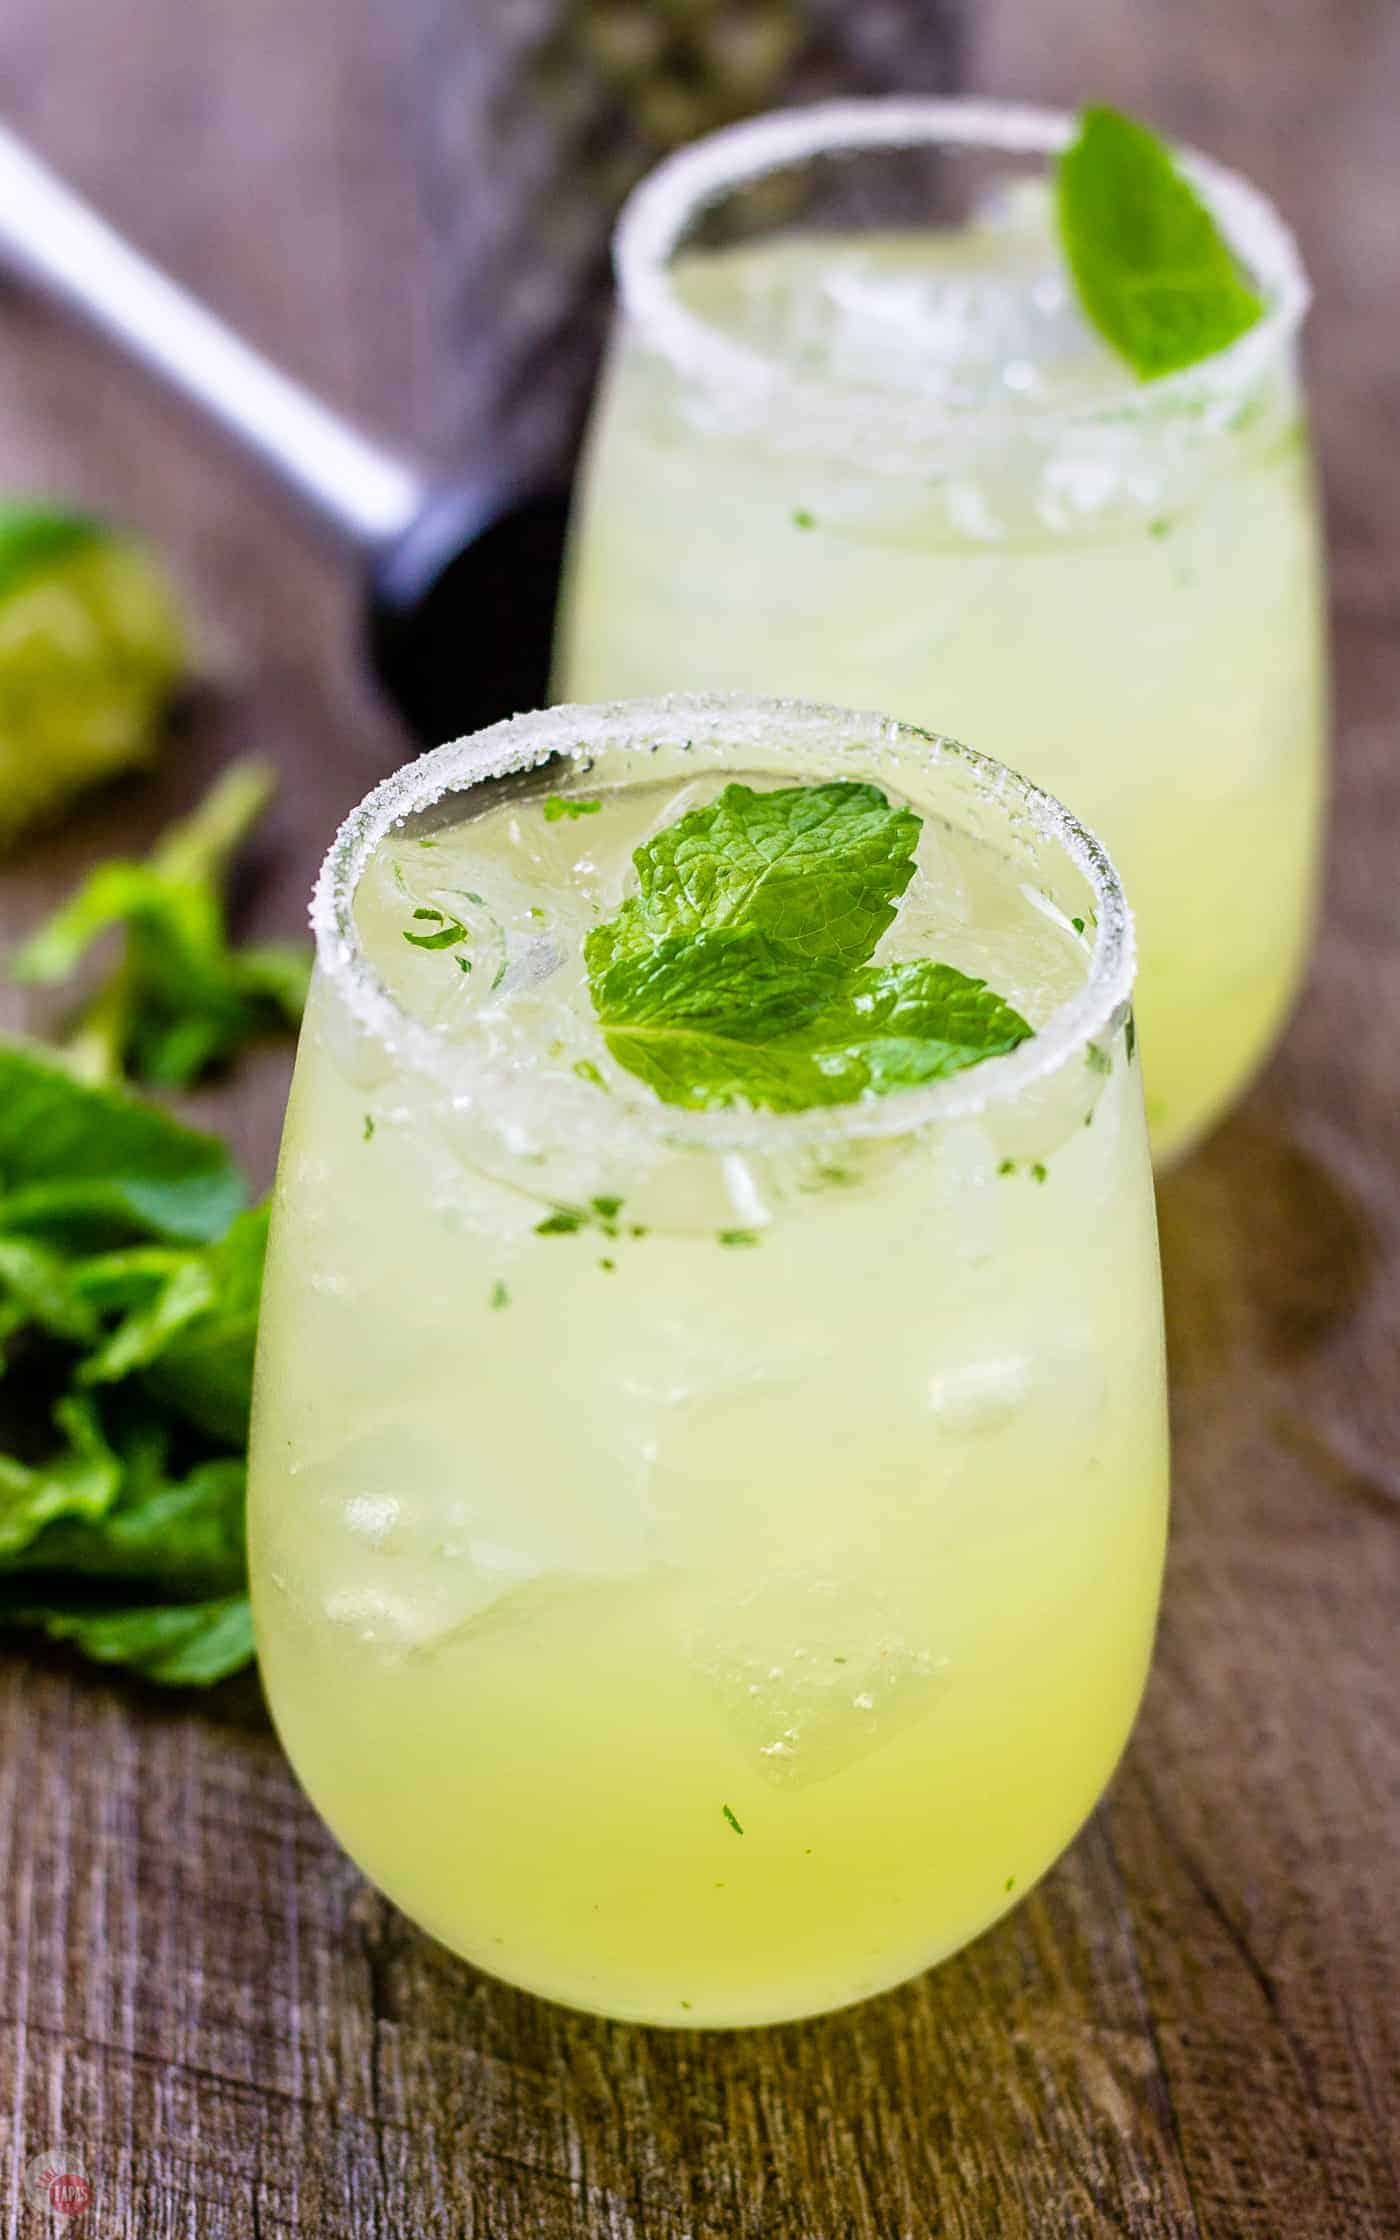 Mariachi Mash – A Lemon Lime Cocktail